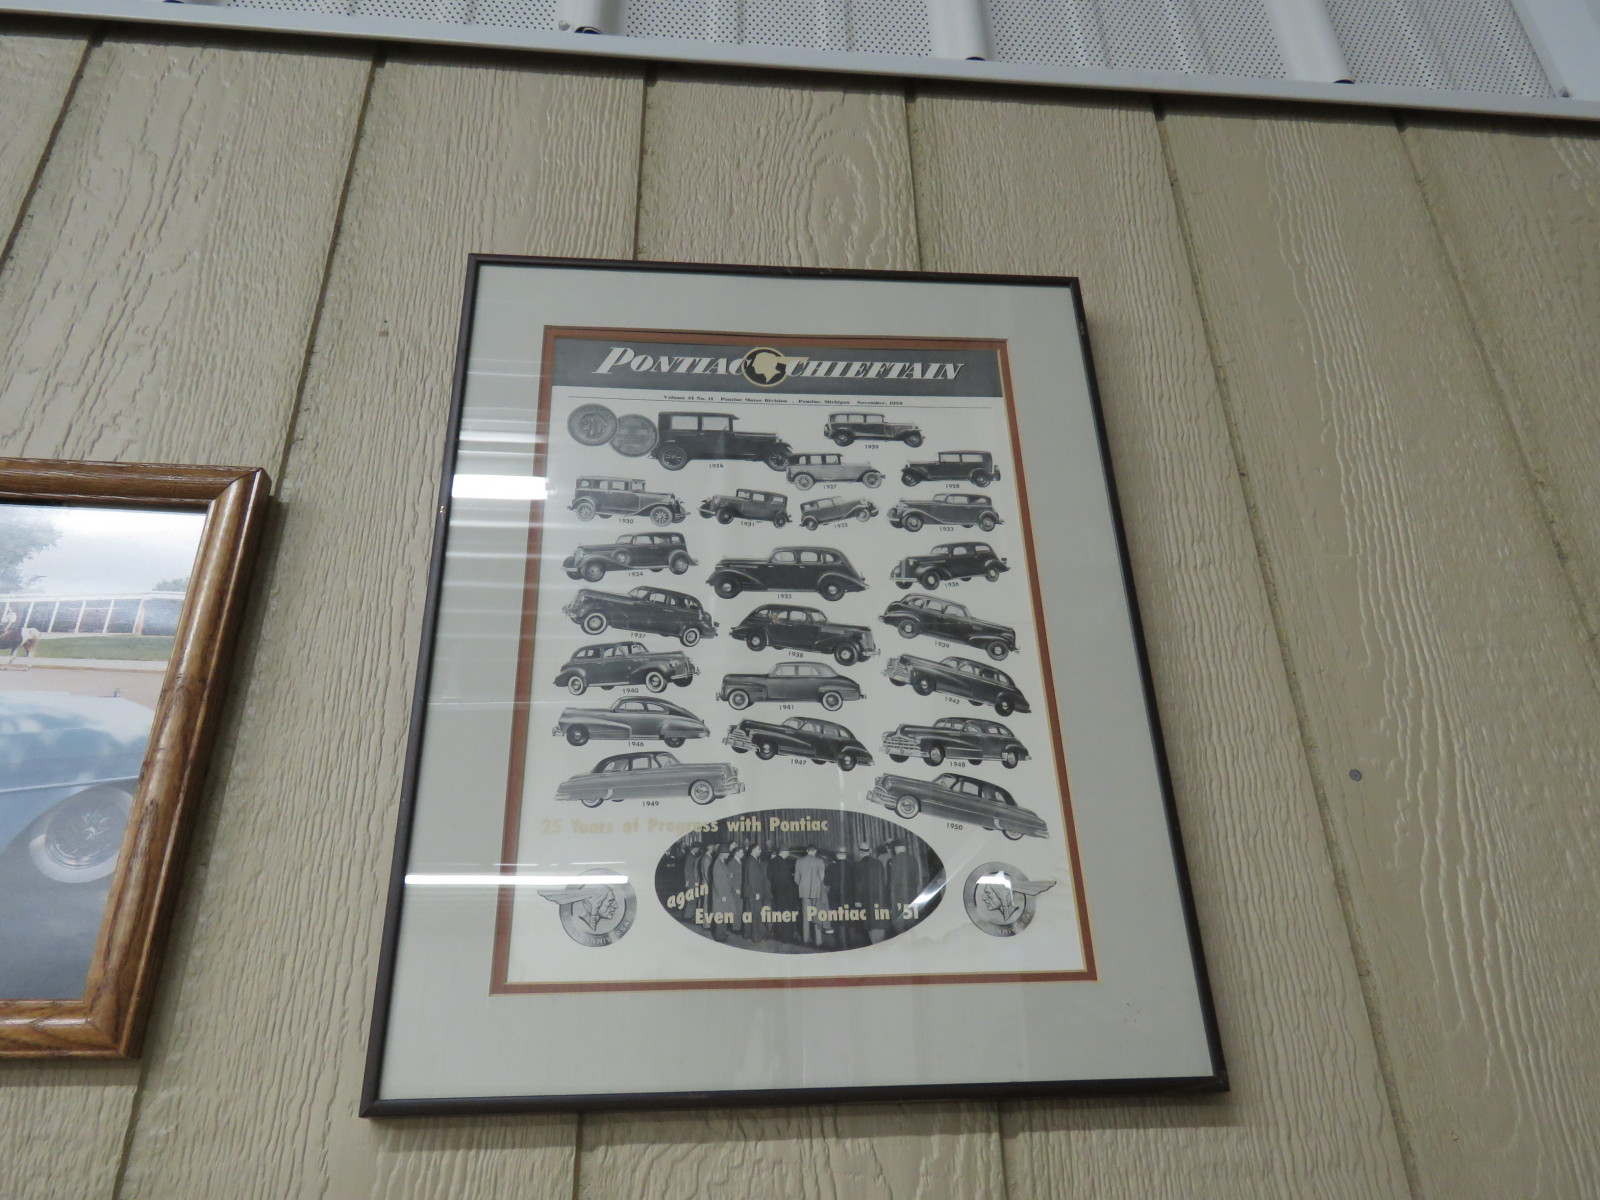 Pontiac Advertising -Framed - Image 1